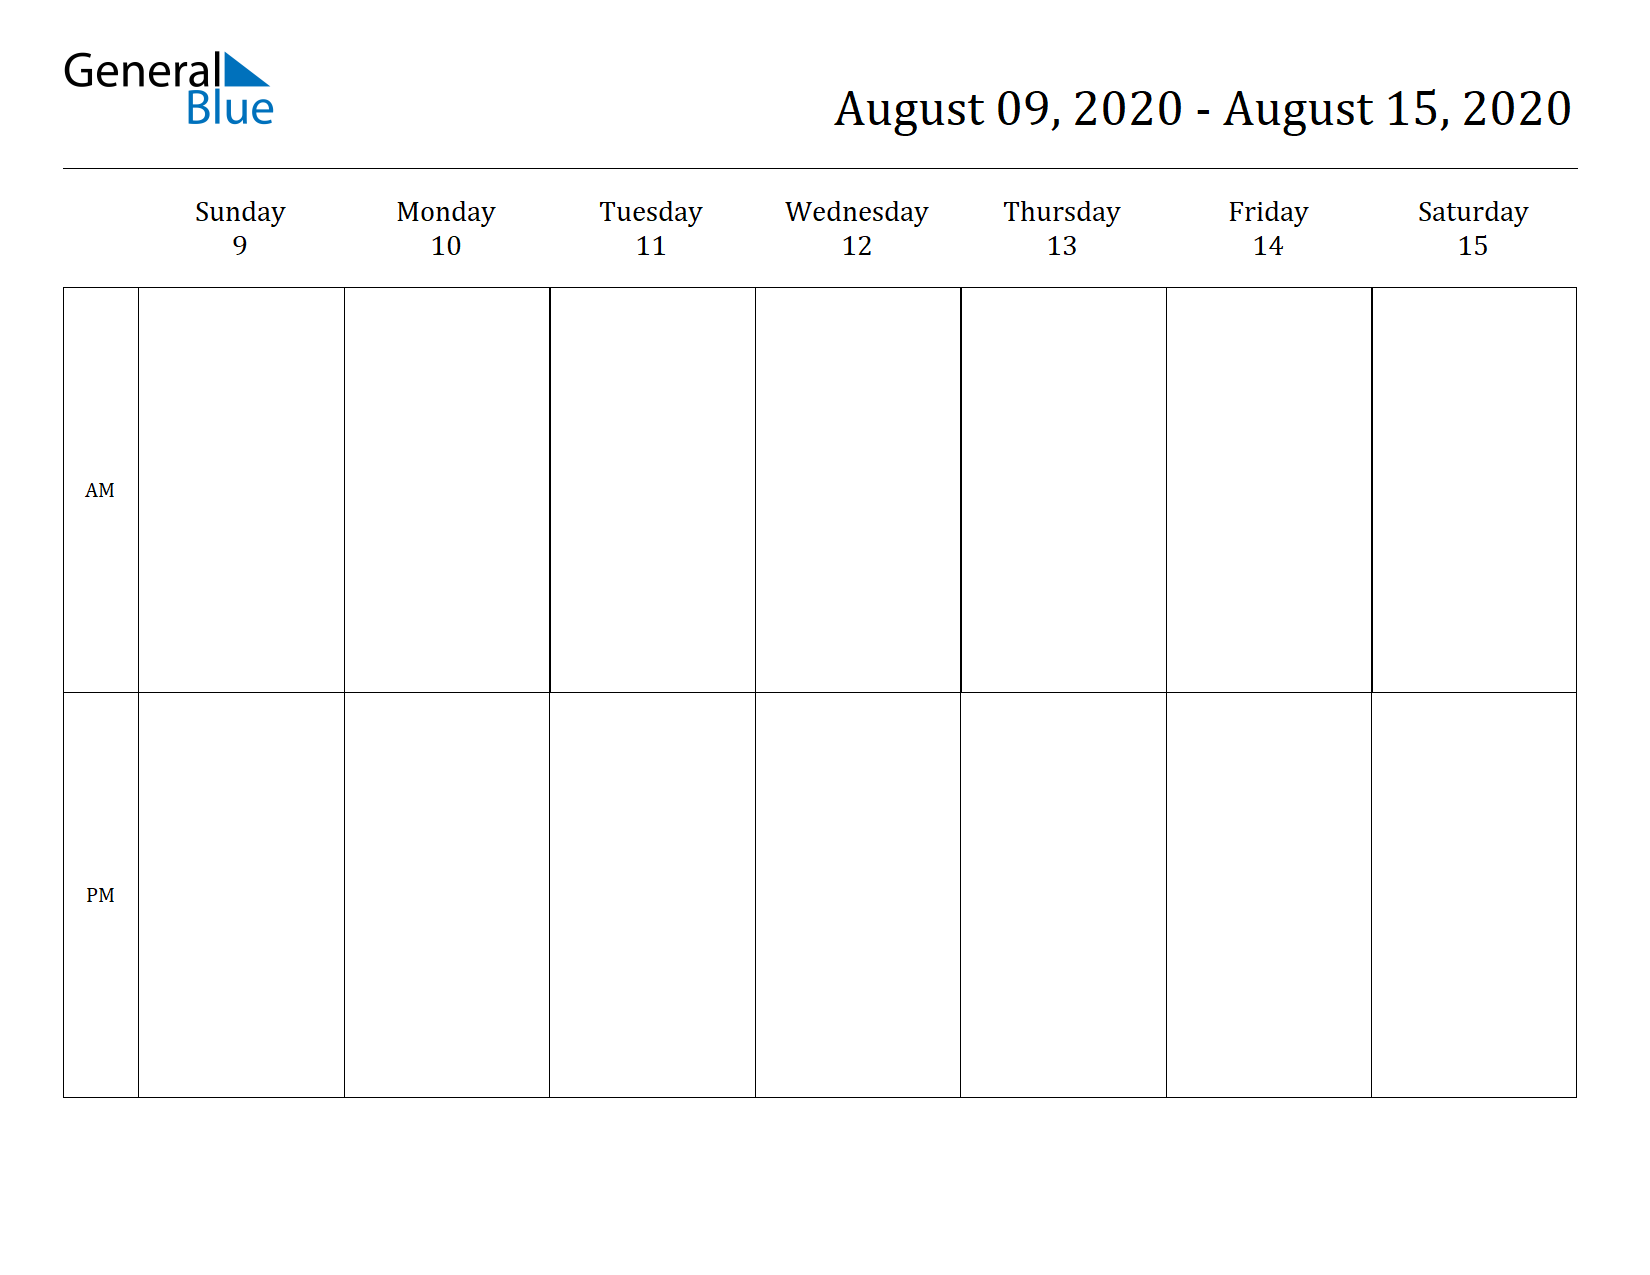 Weekly Calendar for Aug 09, 2020 to Aug 15, 2020